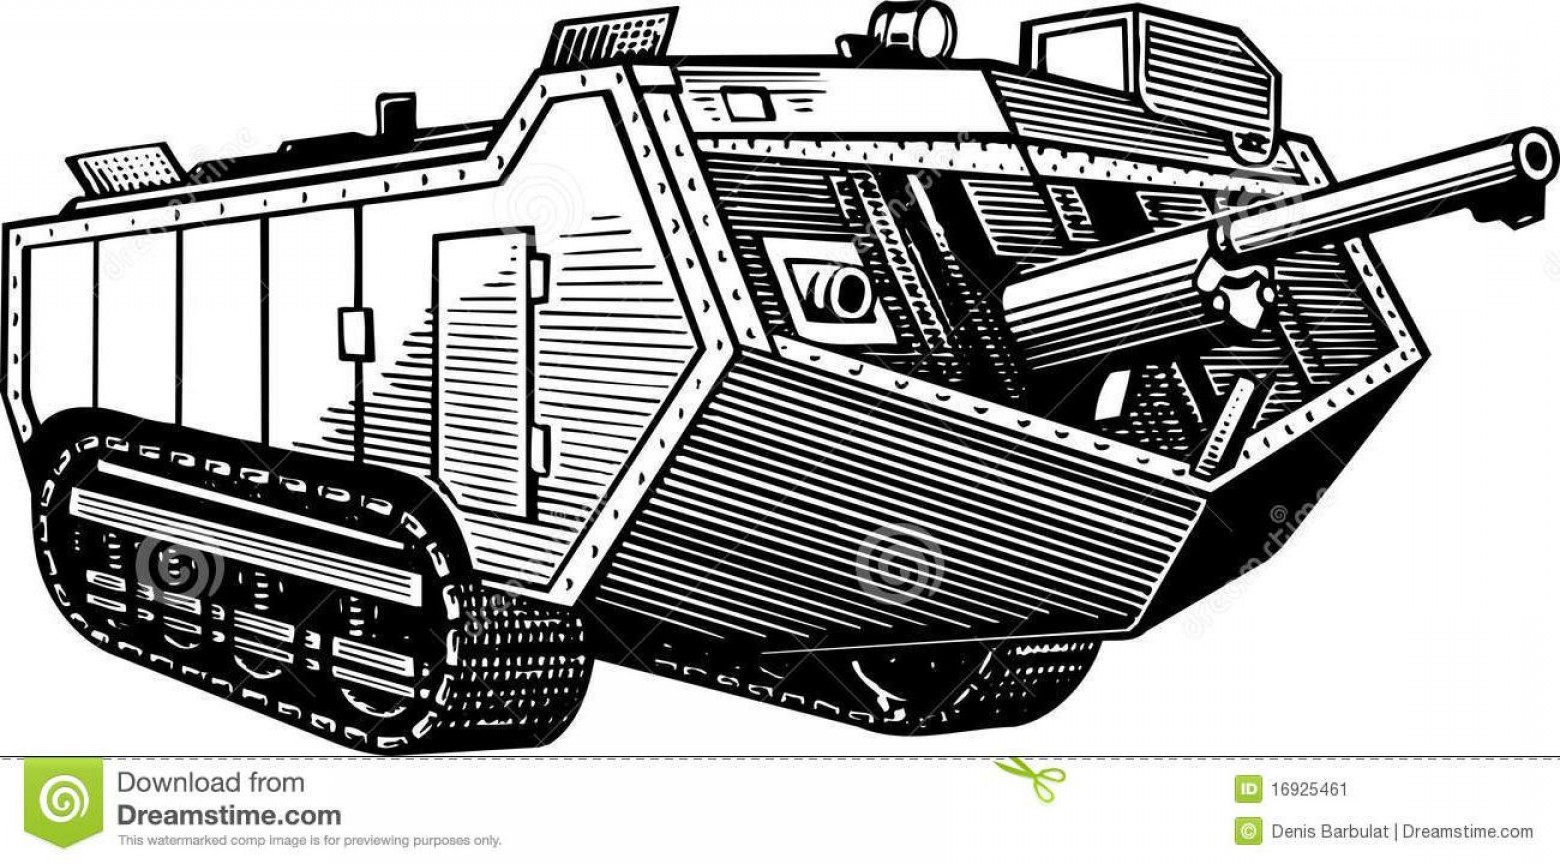 Best Tank Top Vector: Hd Easy To Draw Tanks Vector Images